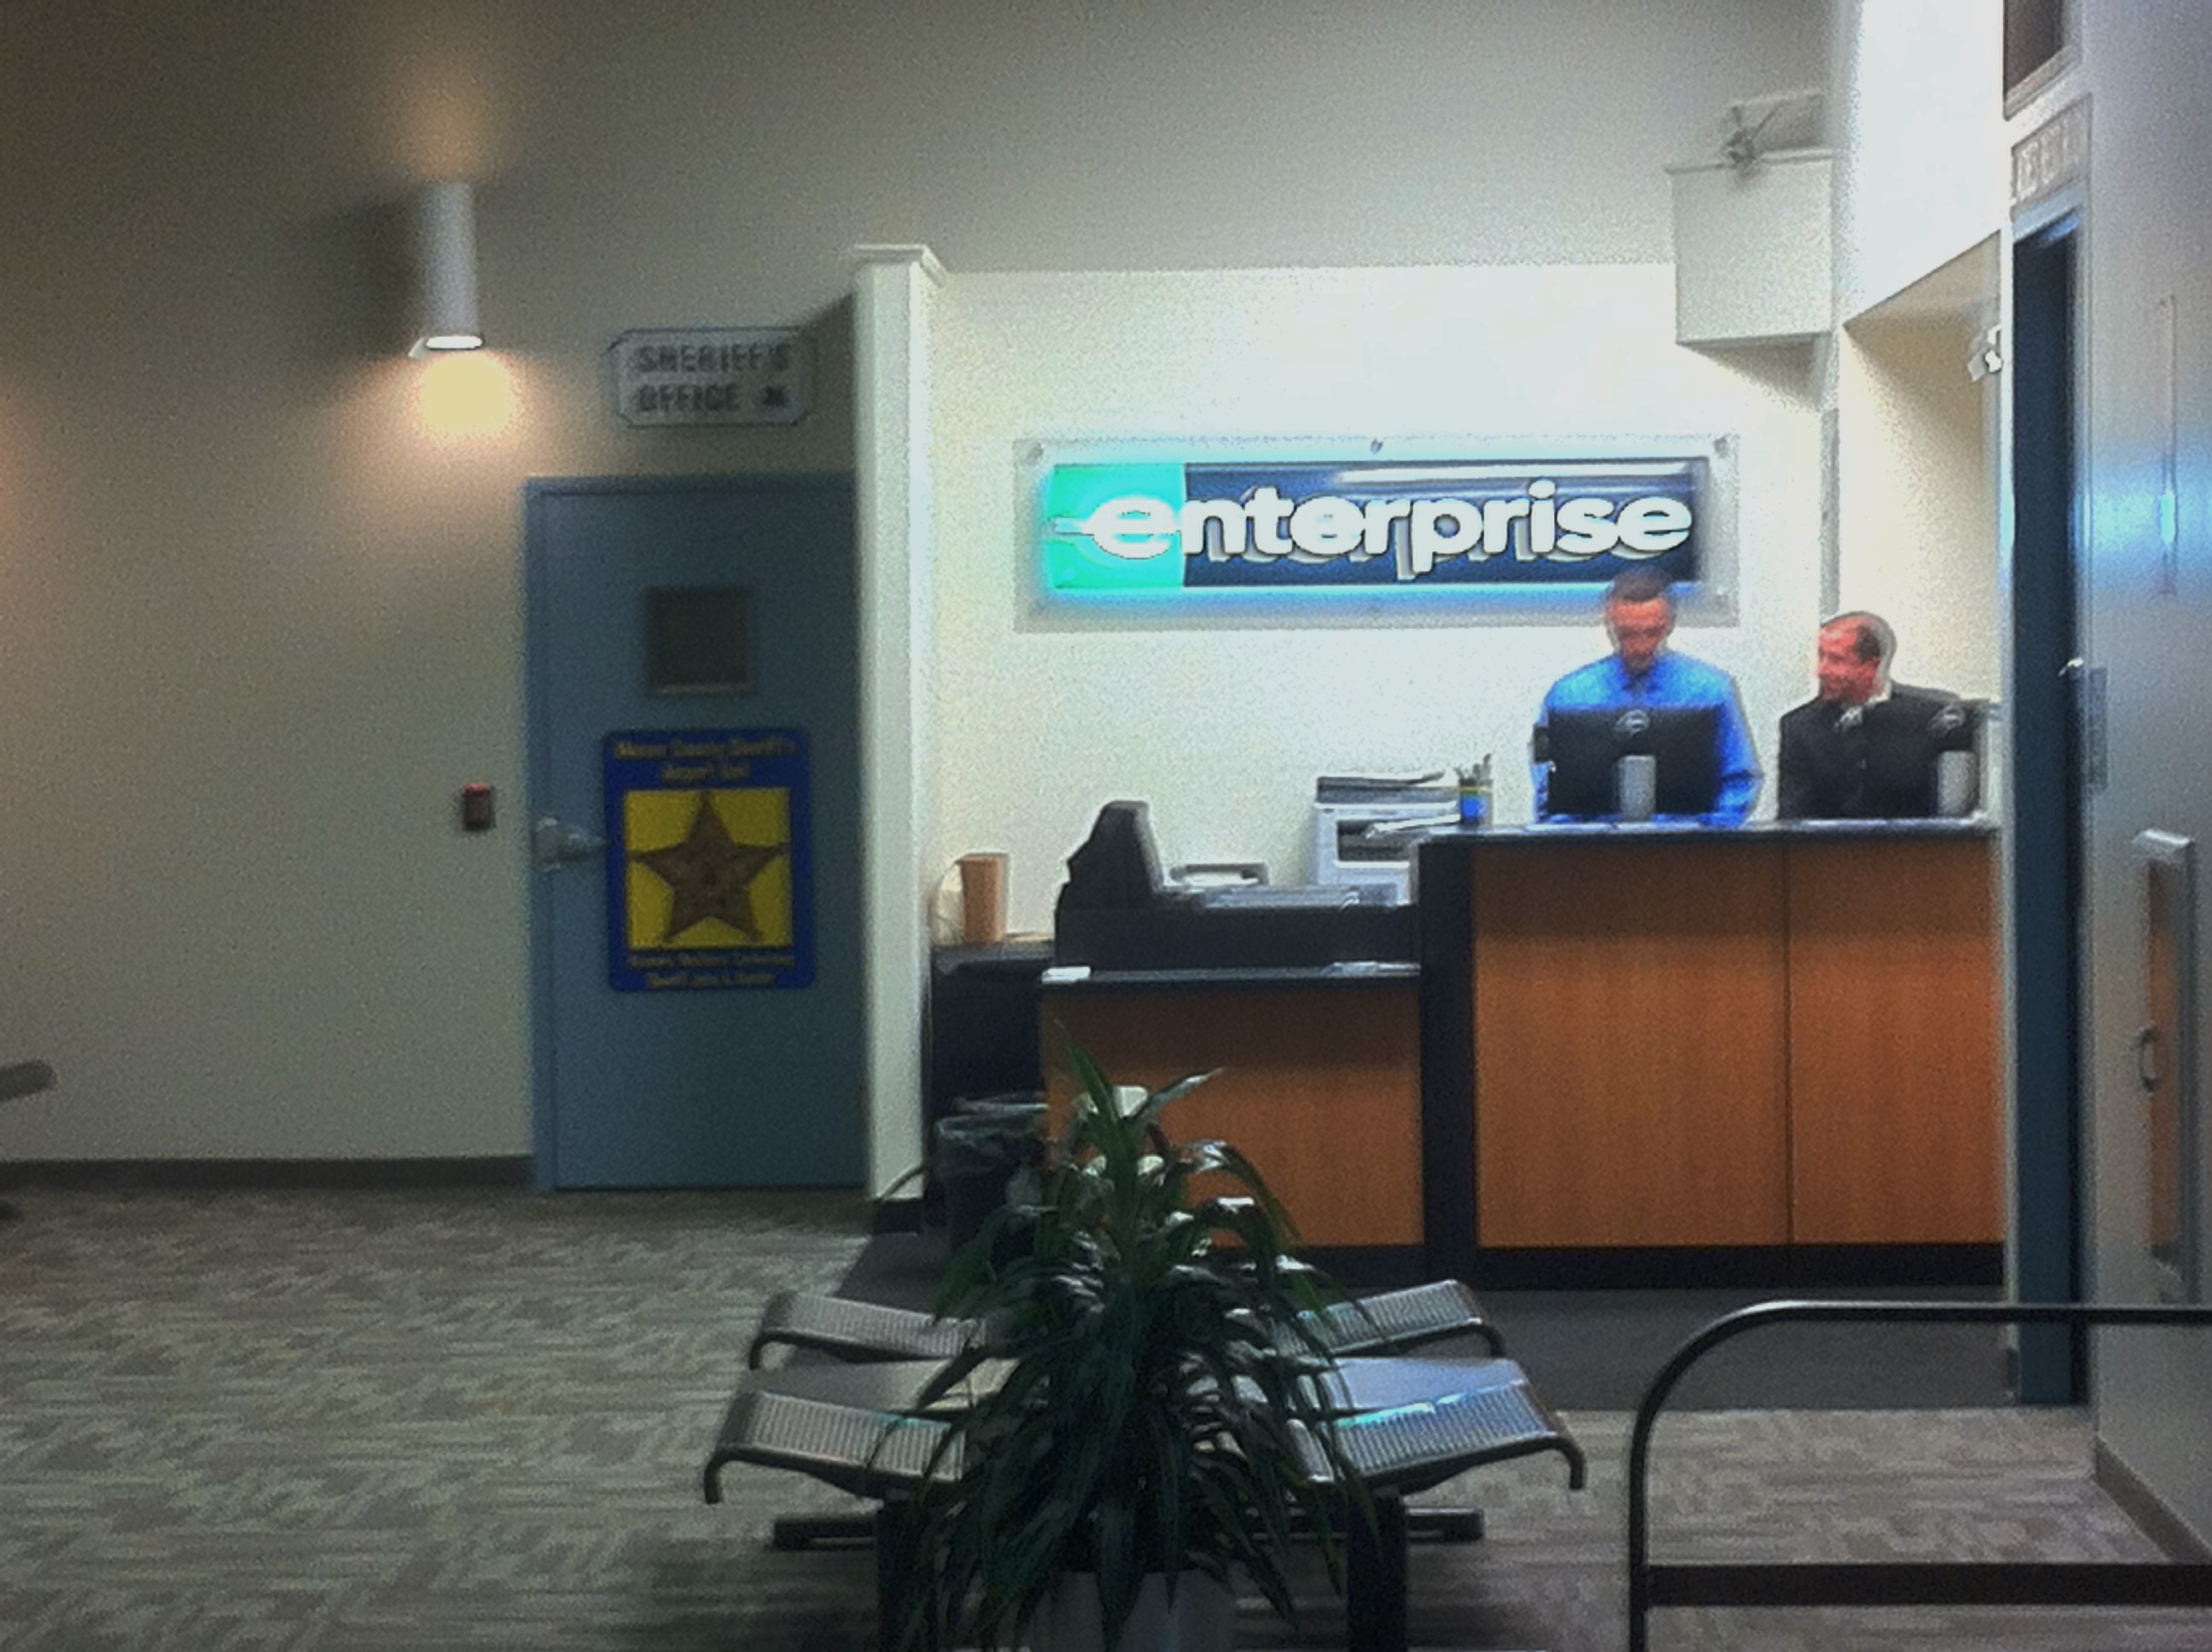 Enterprise Car Rental Glenwood Ave Raleigh Nc